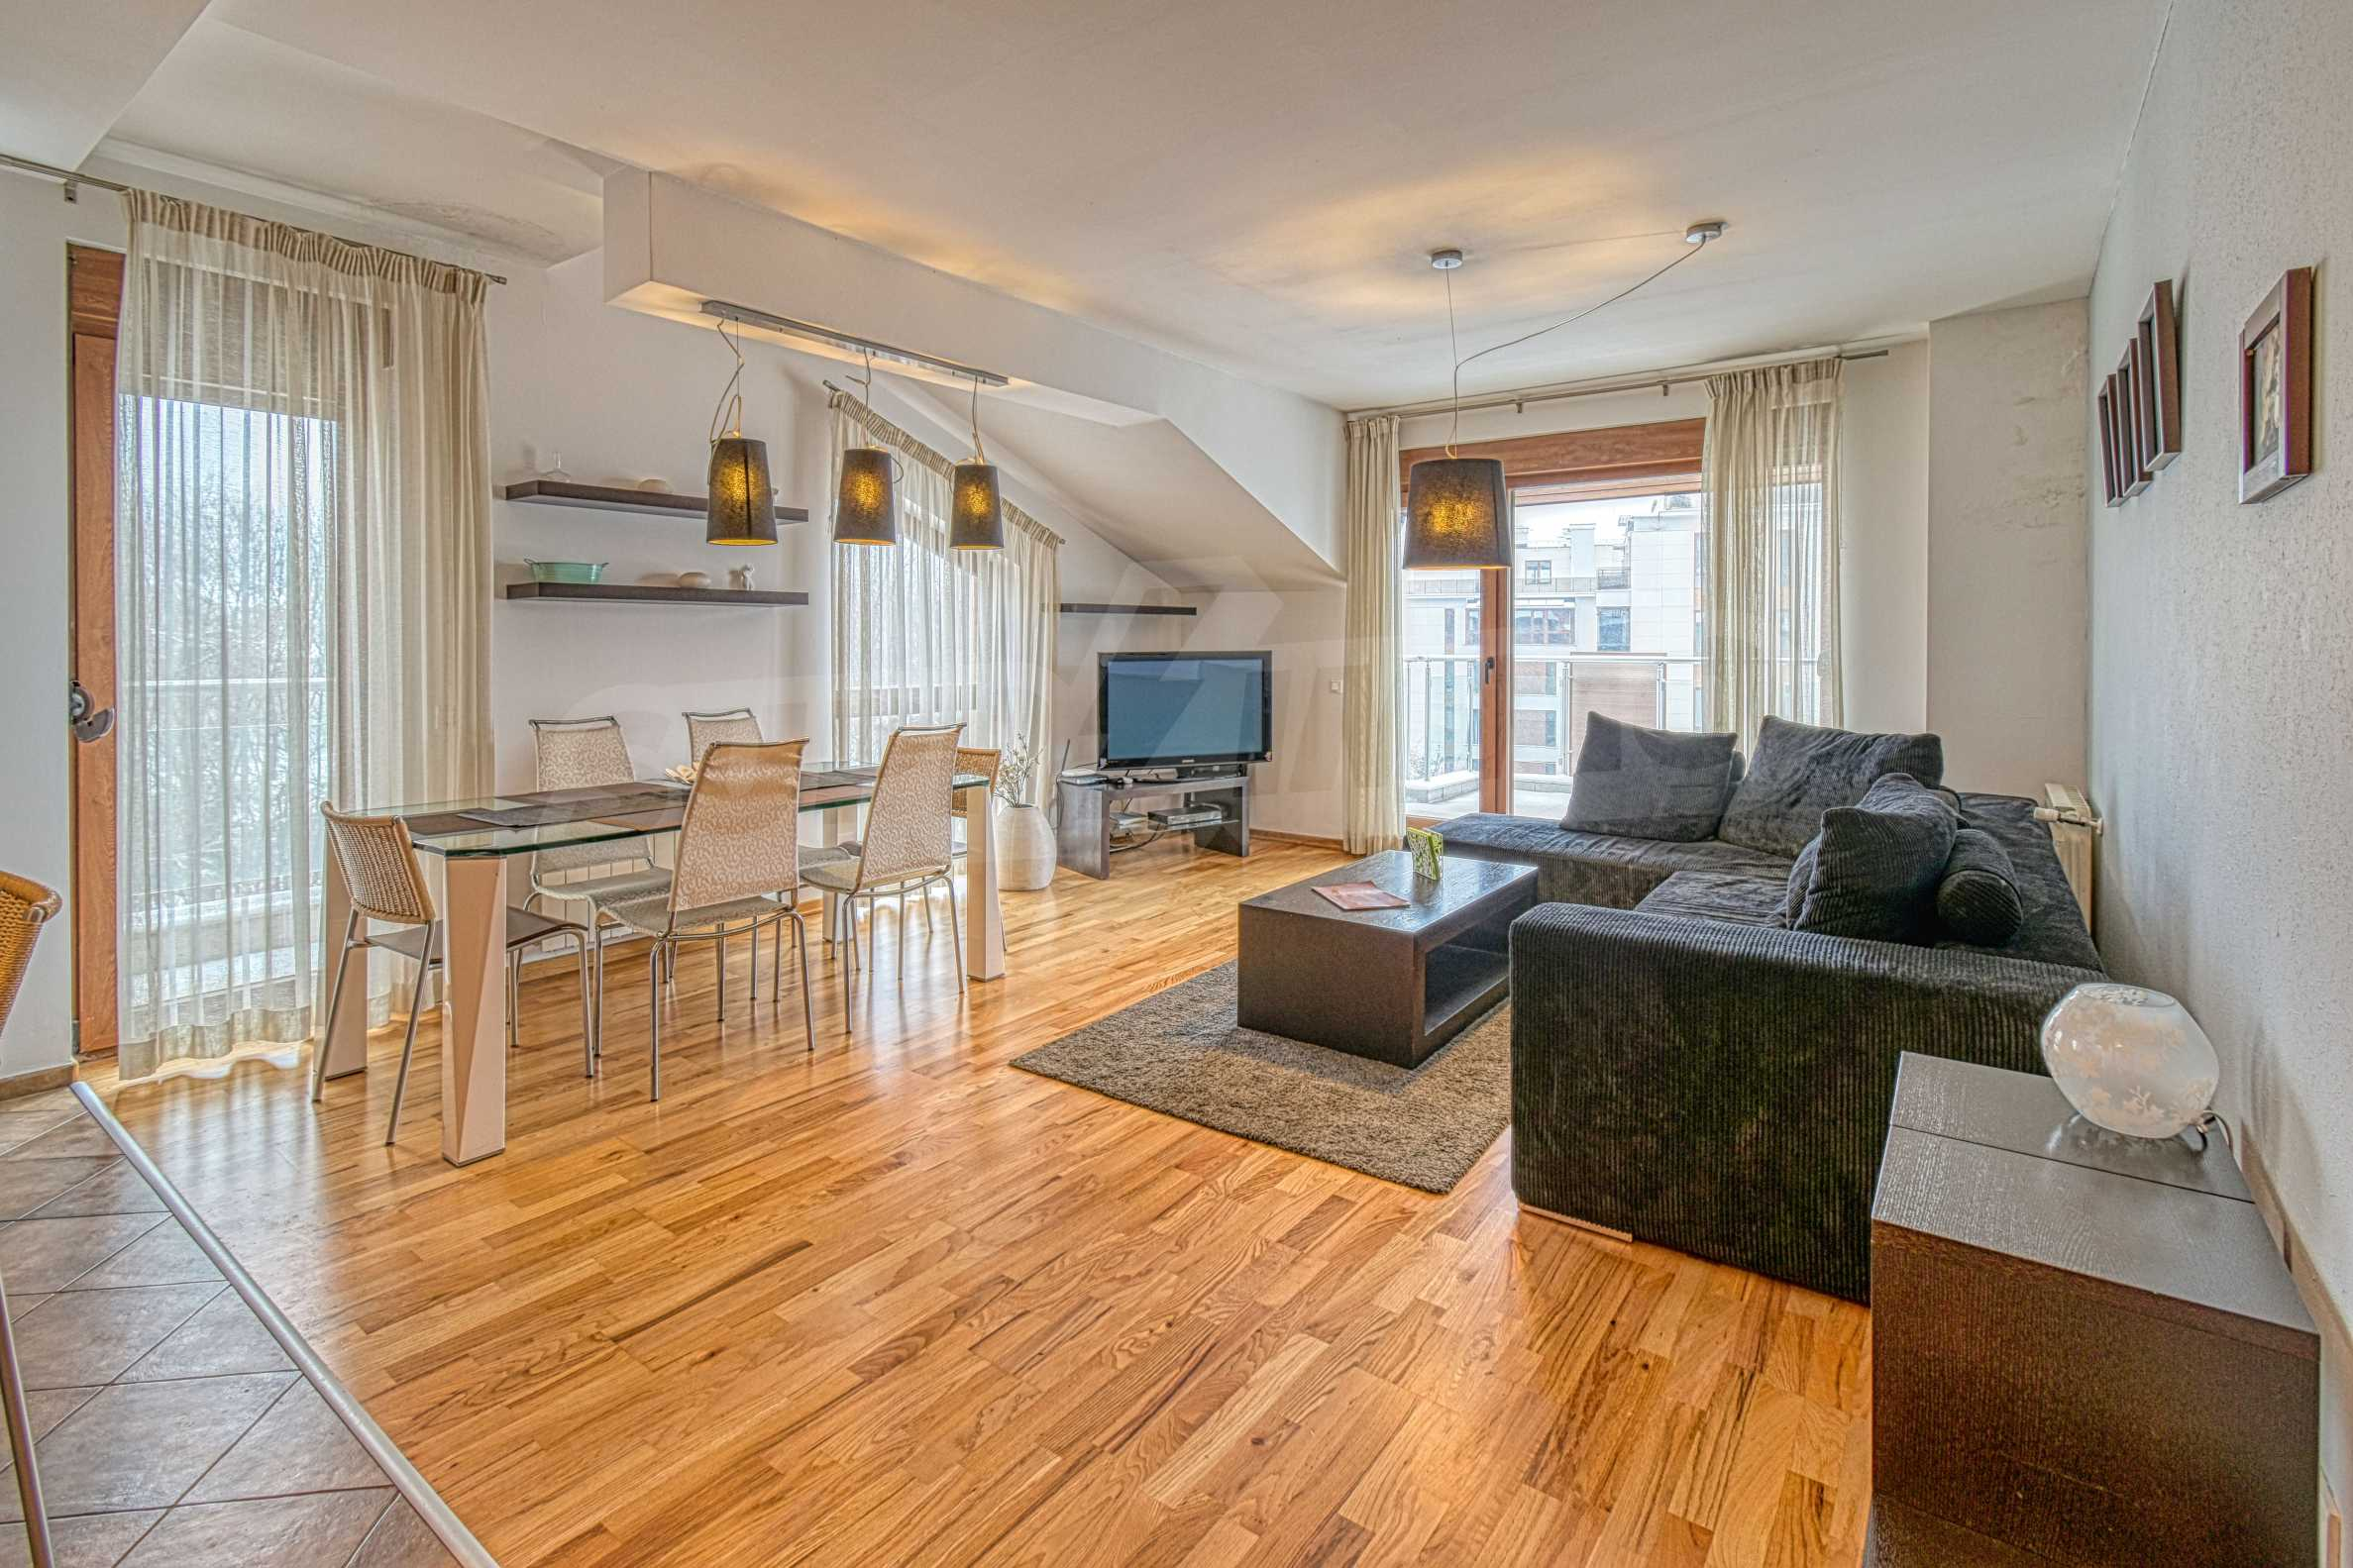 Luxurious and fully furnished two-bedroom apartment in a gated complex at the foot of Vitosha Mountain